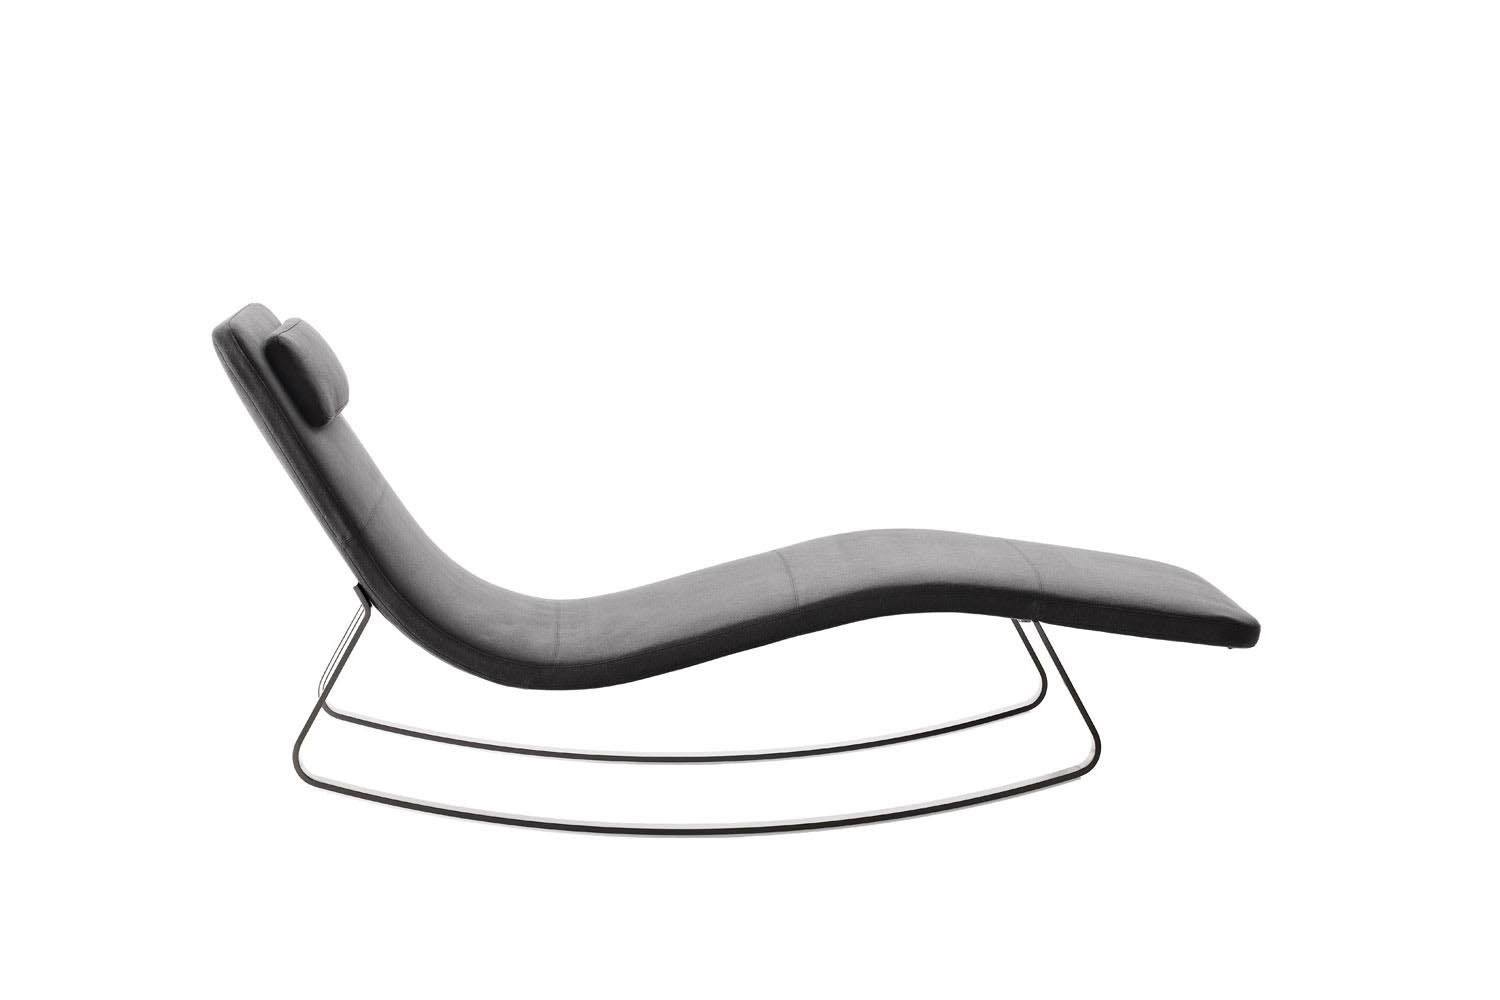 Landscape Chaise Longue by Jeffrey Bernett for B&B Italia